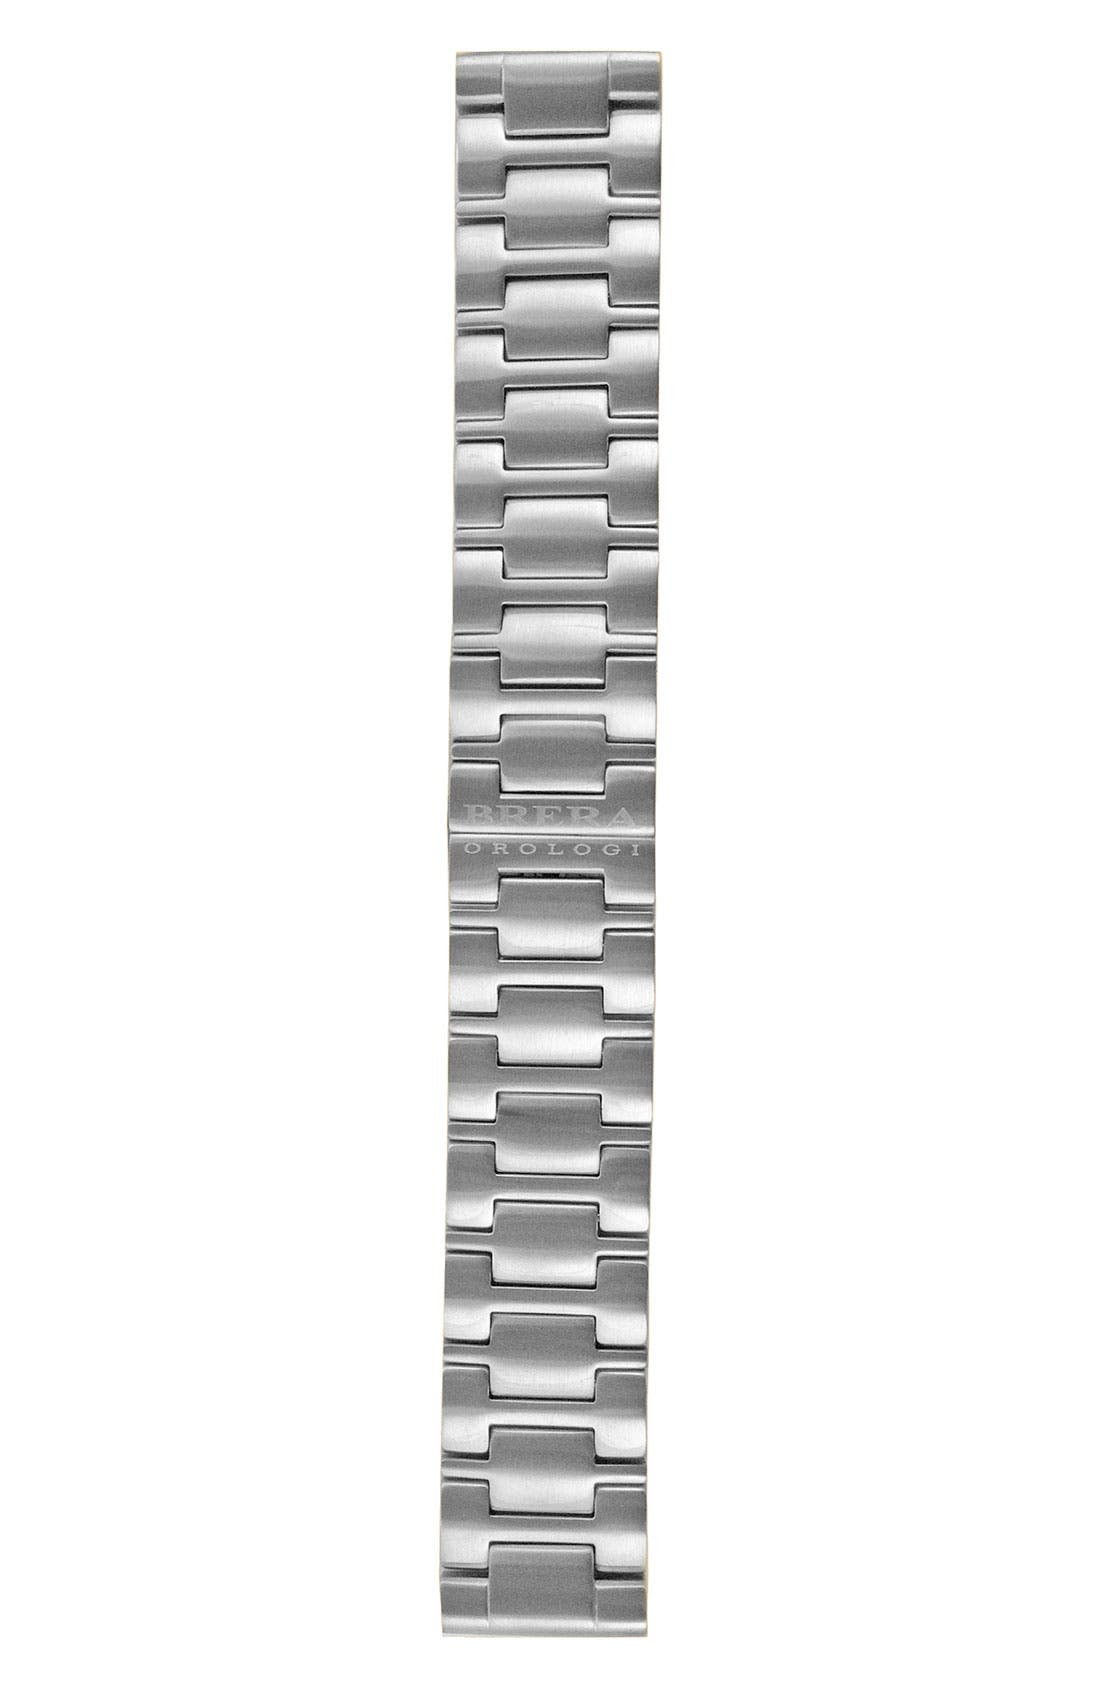 Main Image - Brera 'Francesca - Eterno Piccolo' 22mm Stainless Steel Watch Bracelet